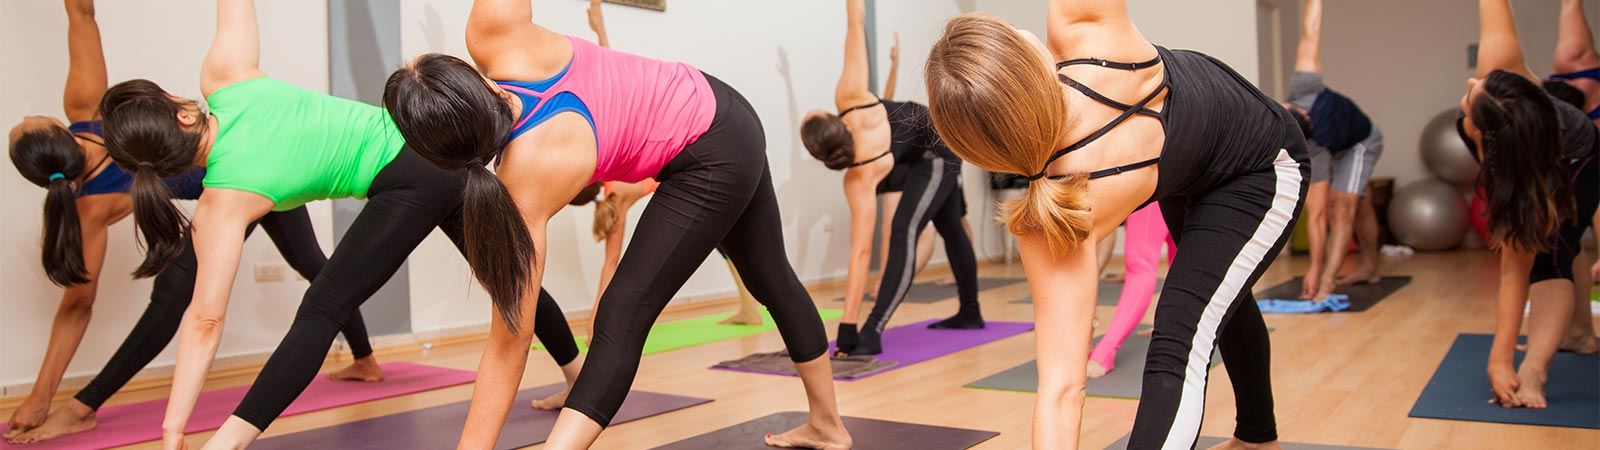 Infrared Hot Yoga Class in Wellington